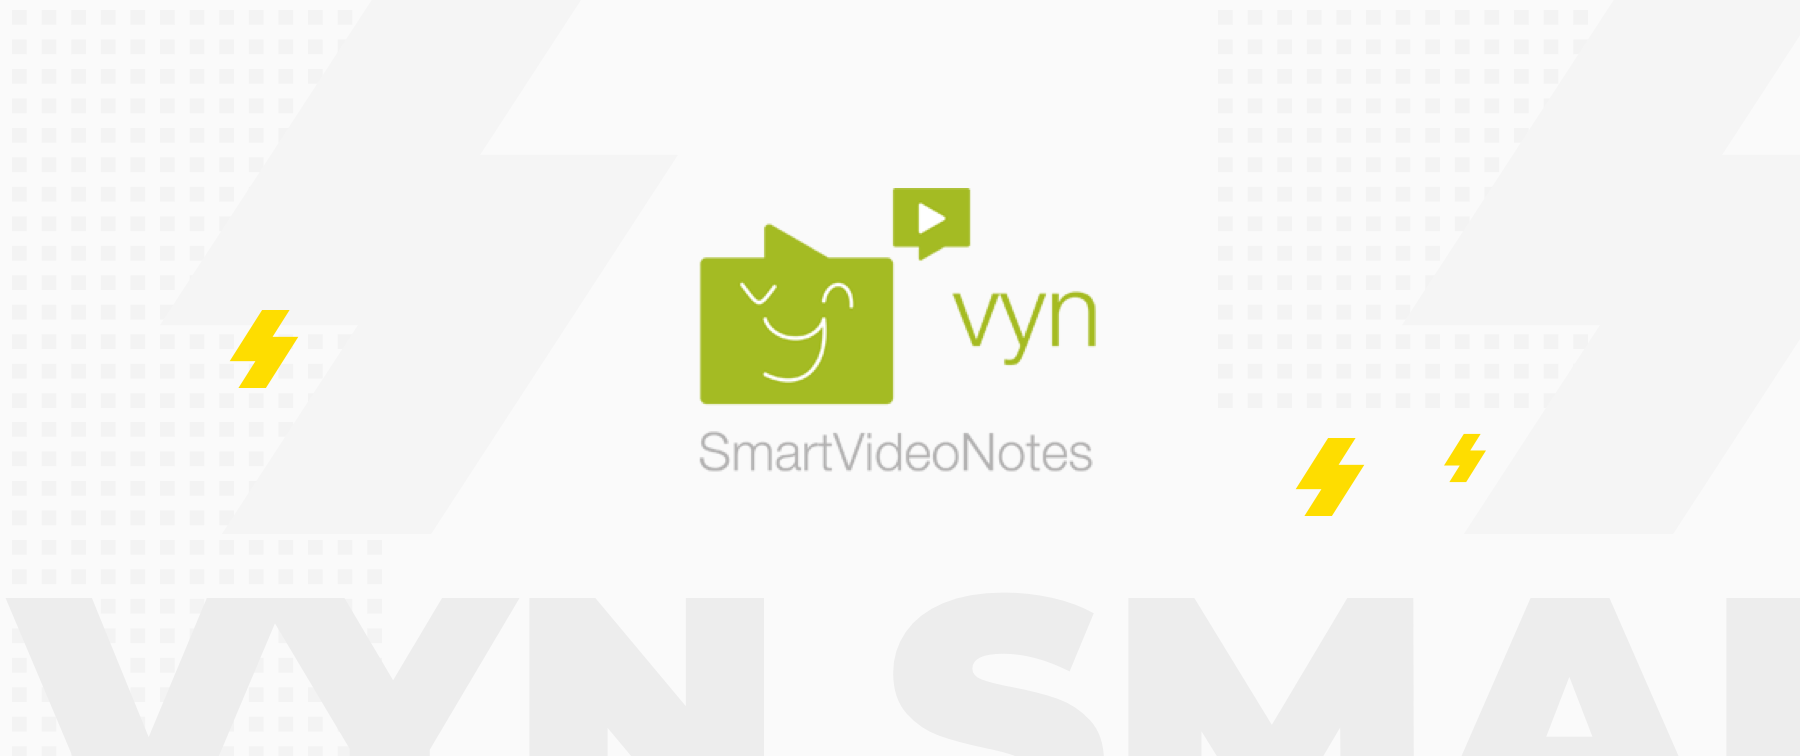 Vyn SmartVideoNotes and salesforce